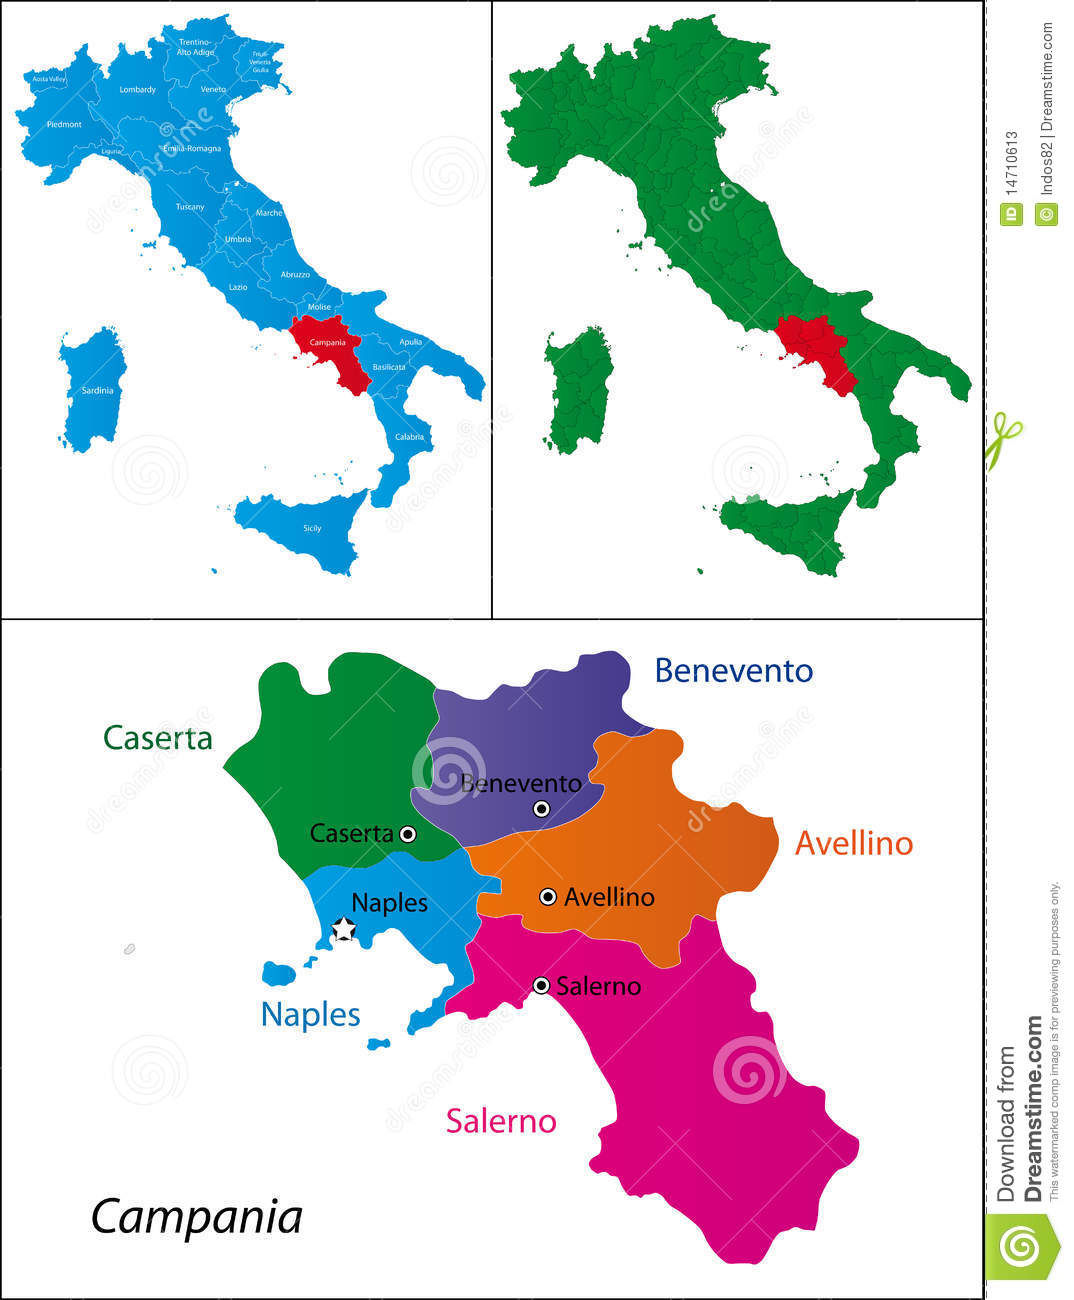 Region of Italy - Campania stock vector. Illustration of geography ...